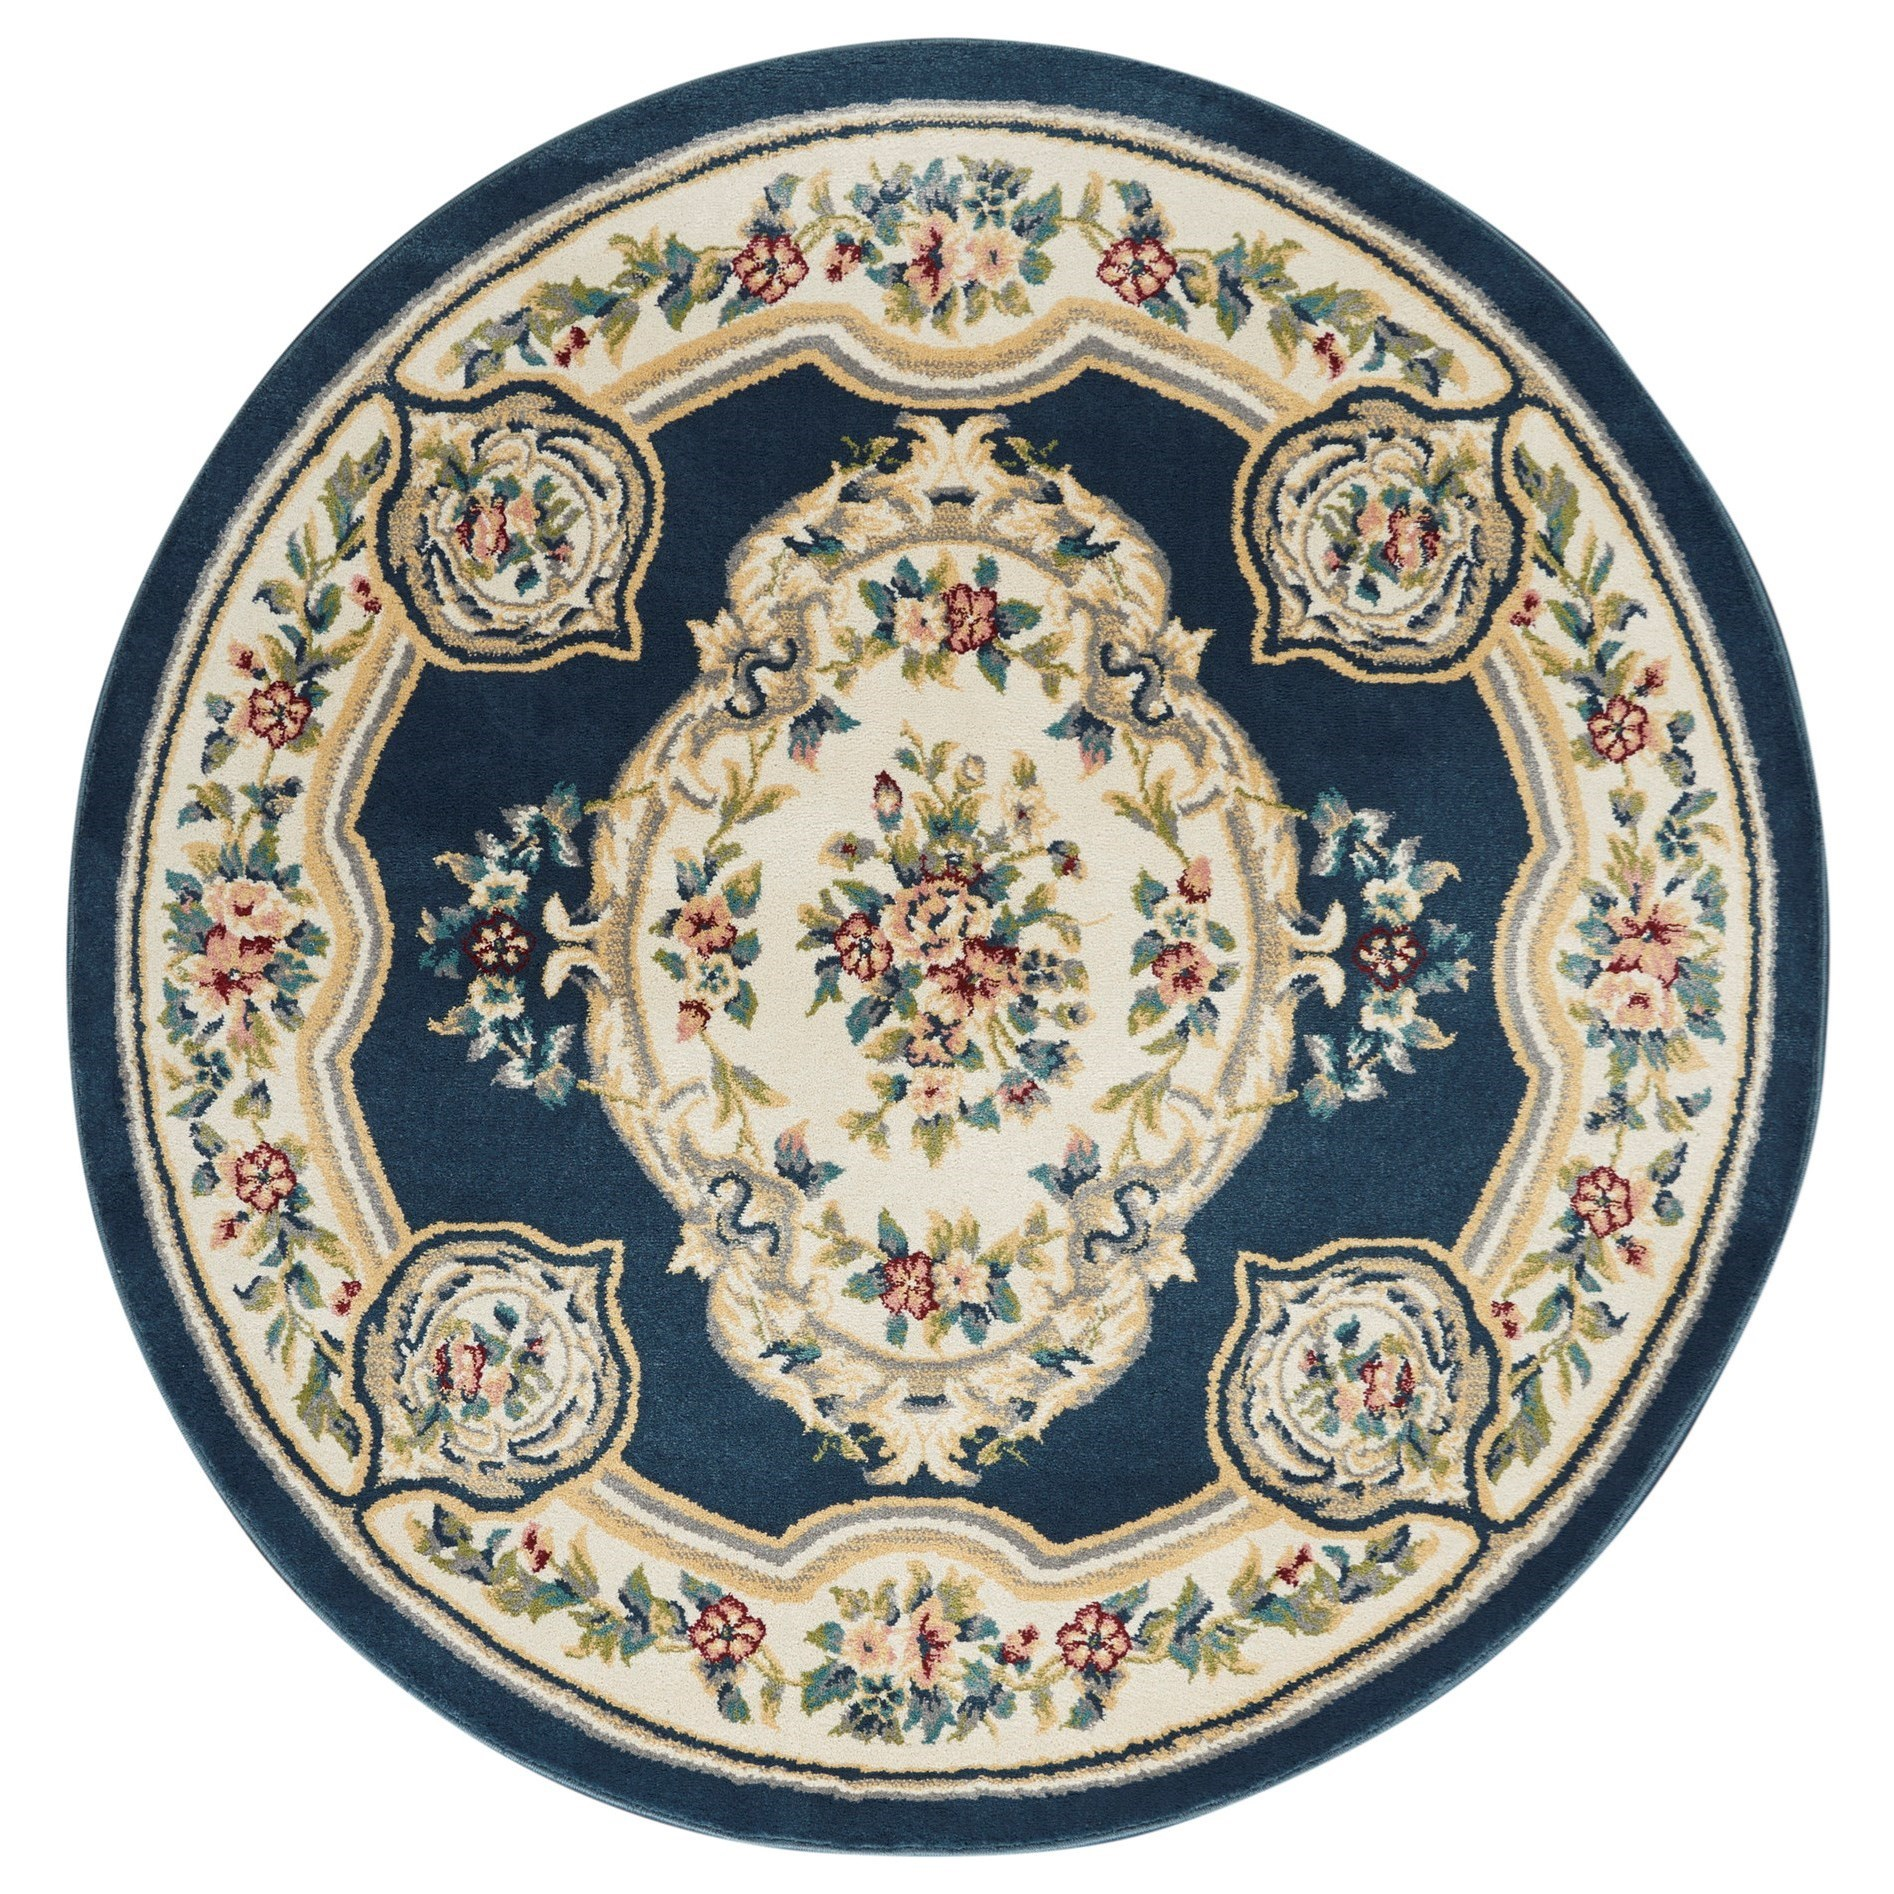 Aubusson 2020 5' Round Rug by Nourison at Adcock Furniture